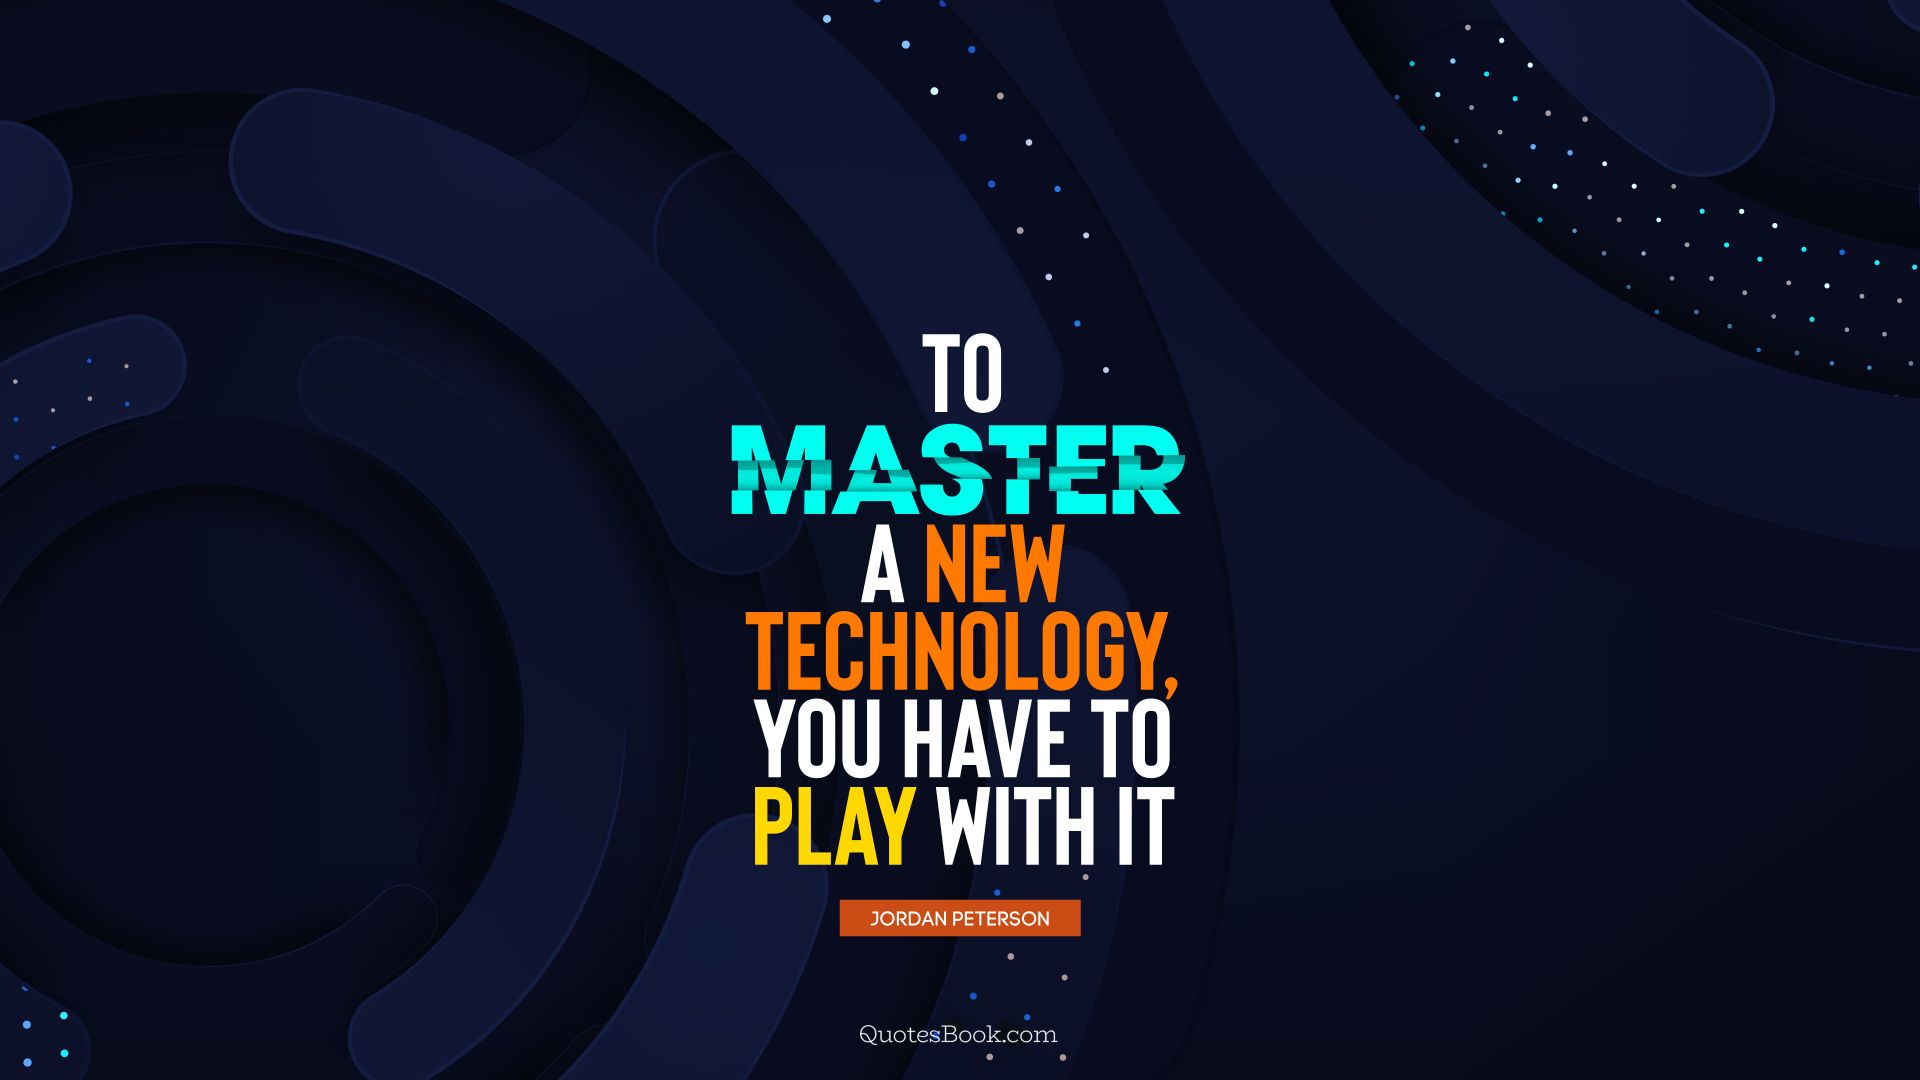 To master a new technology, you have to play with it. - Quote by Jordan Peterson